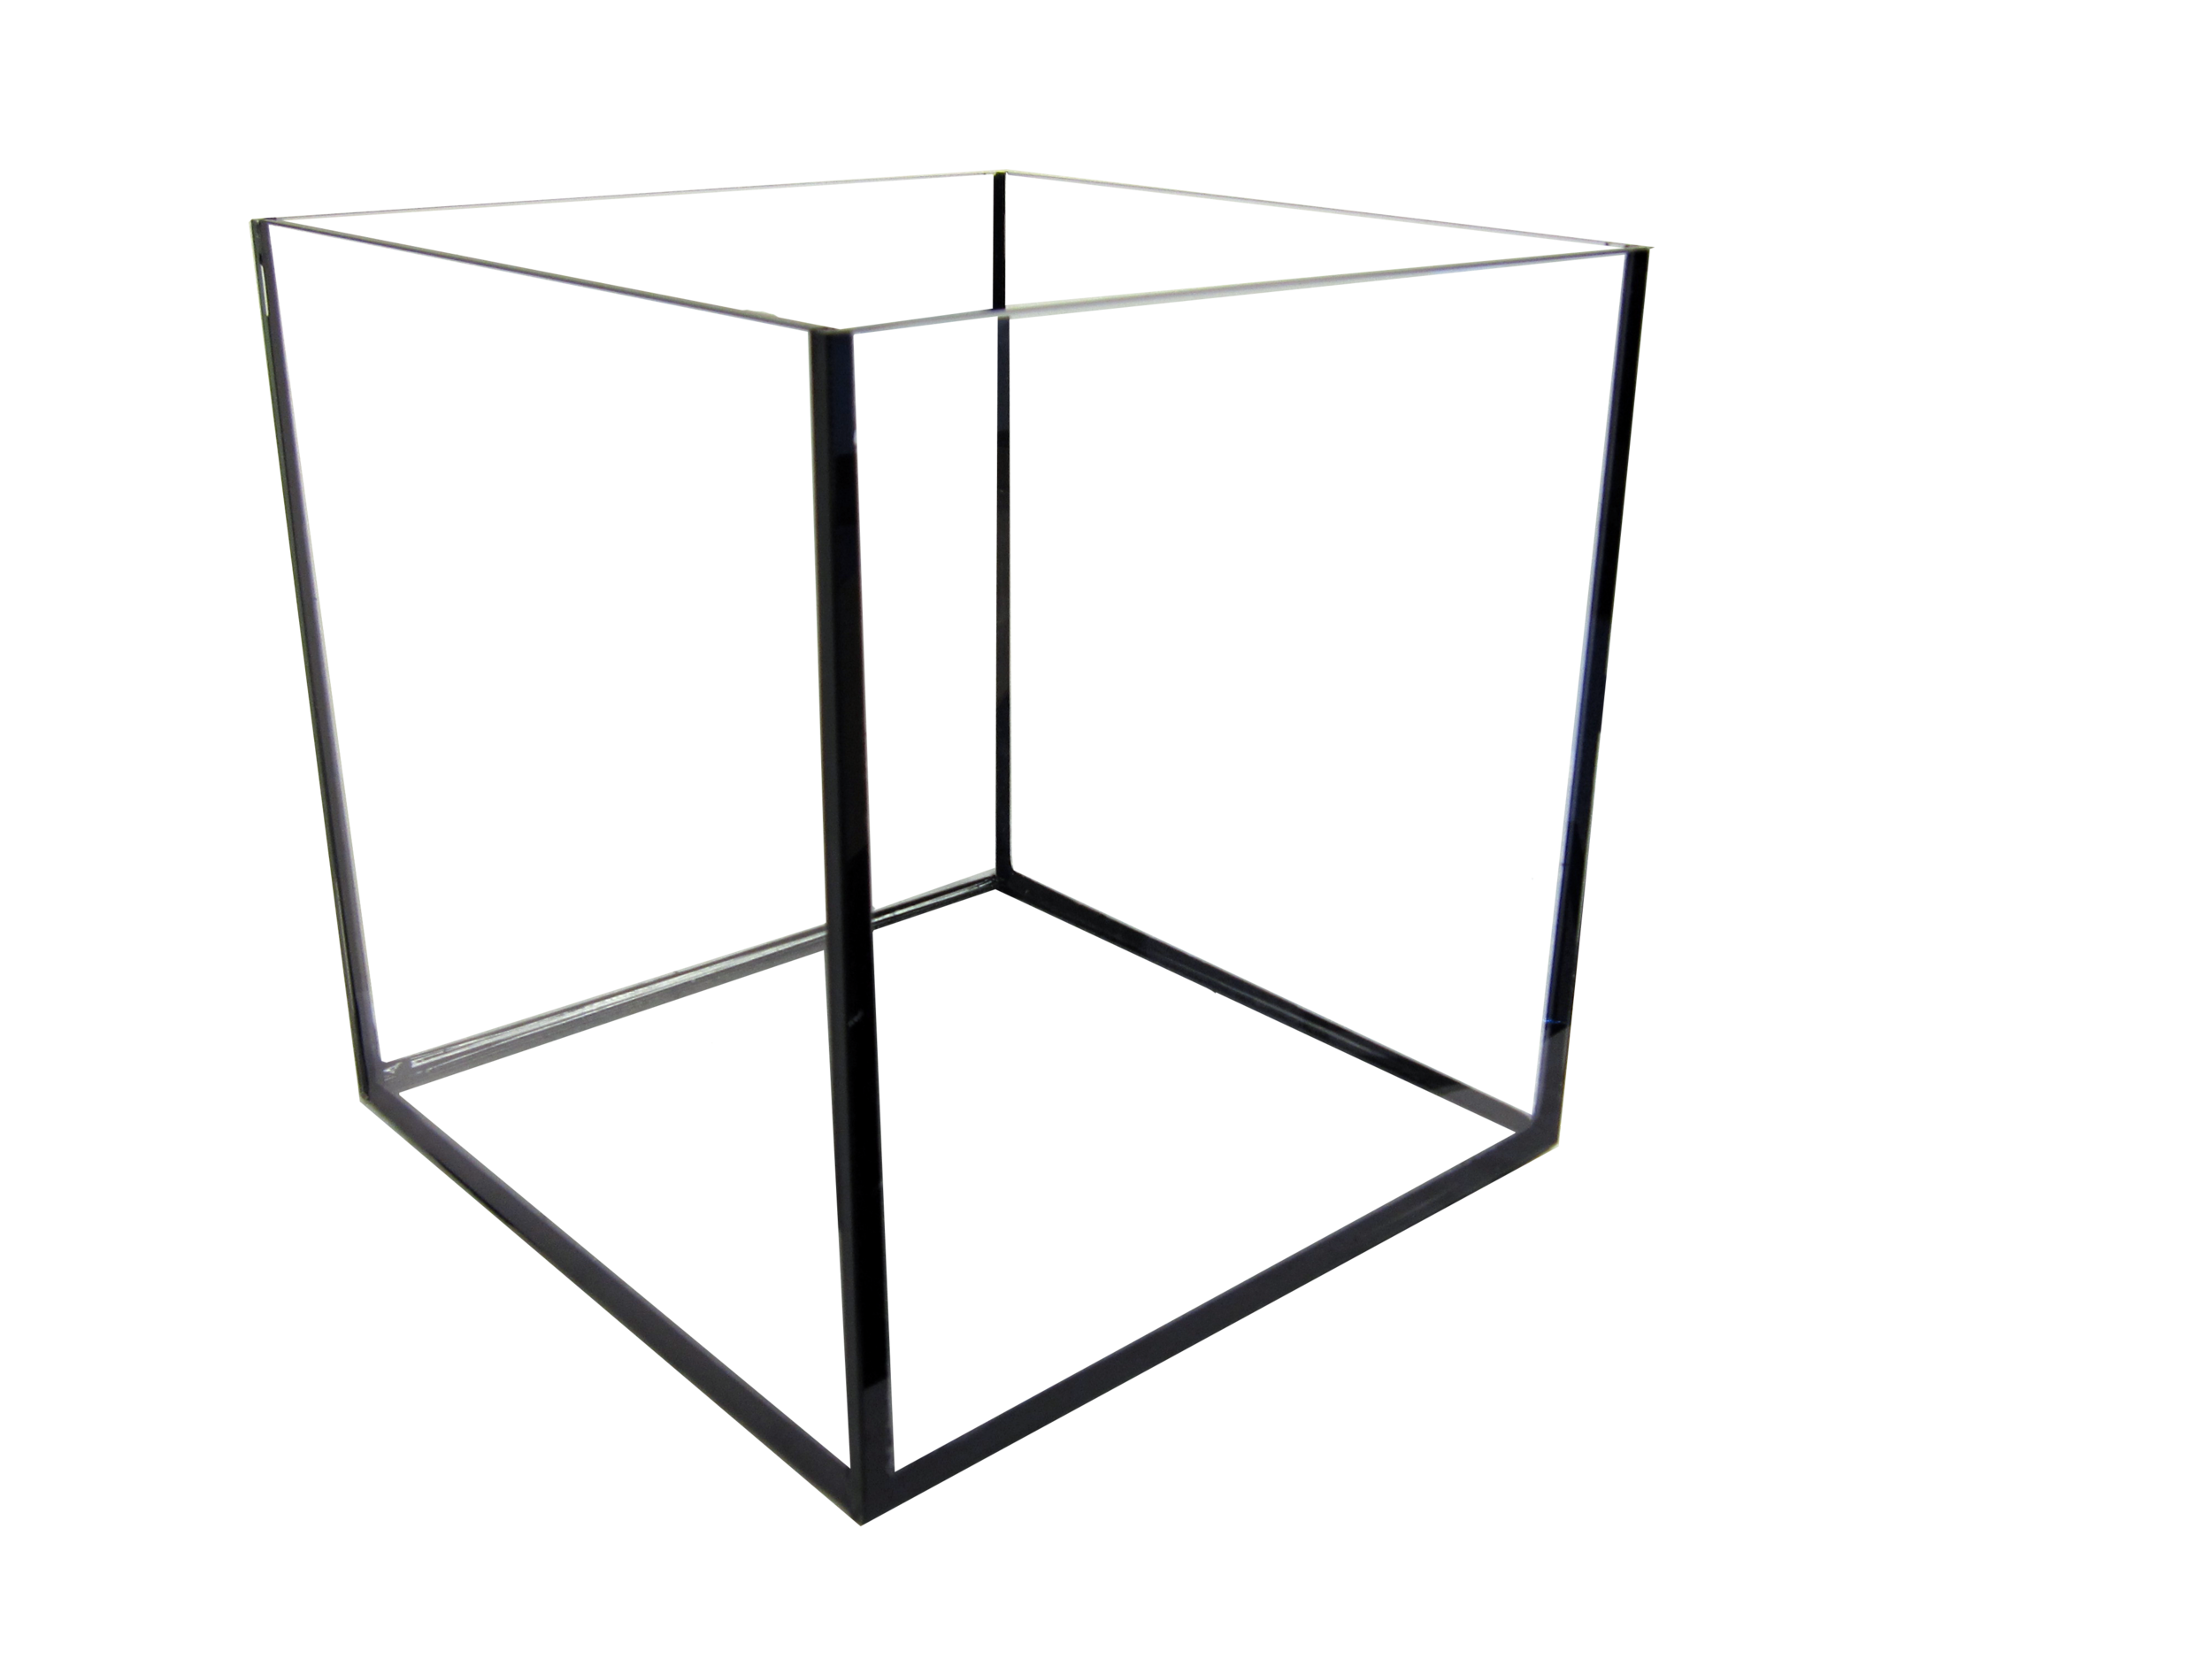 "10 Cube Rimless Aquarium  SKU#: AM11442  UPC#: 7-49729-11442-5  Product Dimension: 9.75""x9.75""x10""  Capacity: Approximately 4.1 gallons  Weight: 8.8 lbs"